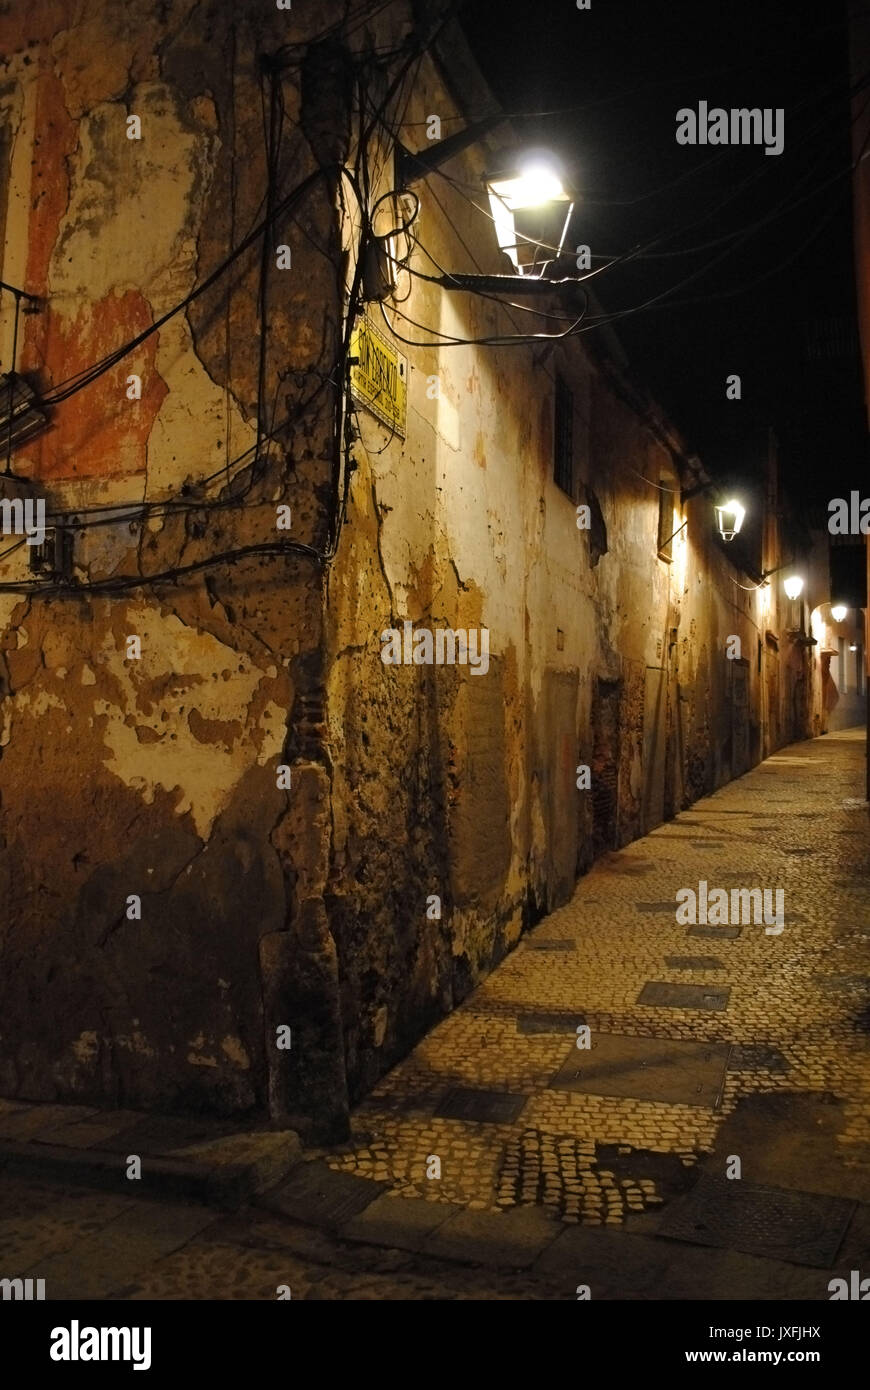 Degrading houses in the old town of Badajoz, Spain. - Stock Image